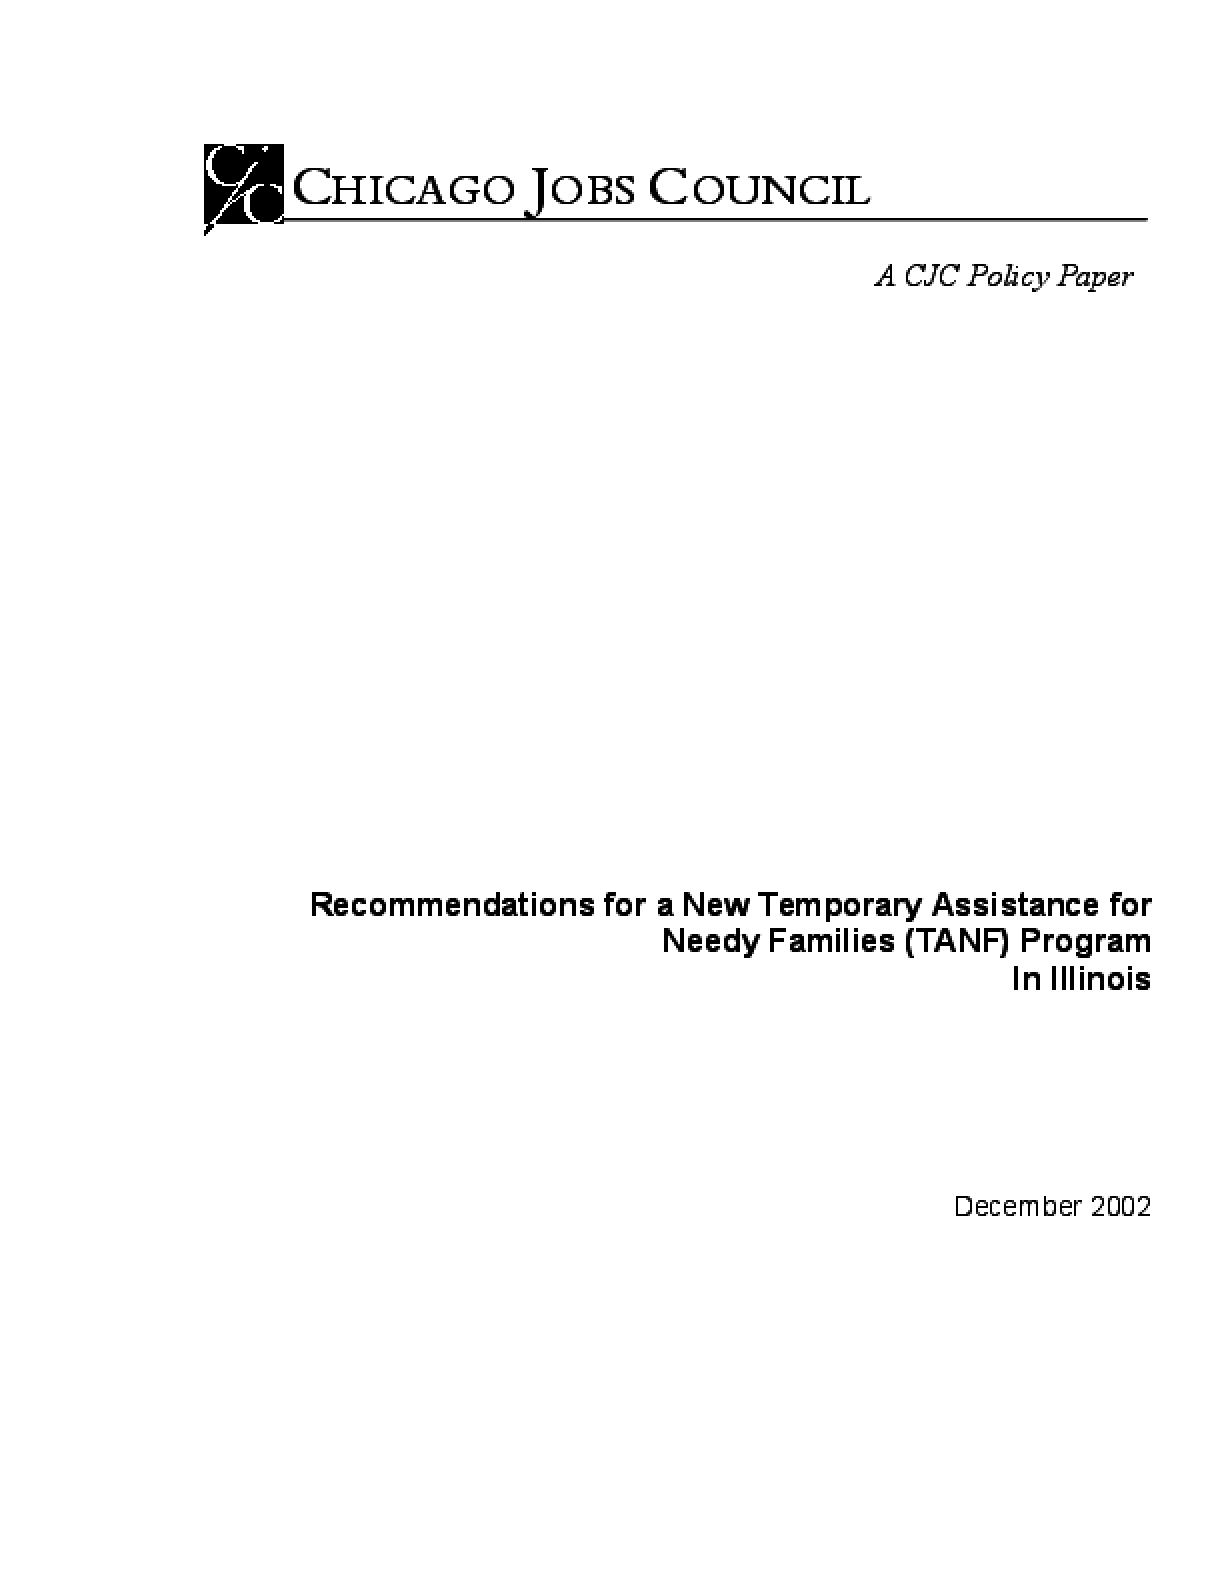 Recommendations for a New Temporary Assistance for Needy Families (TANF) Program In Illinois